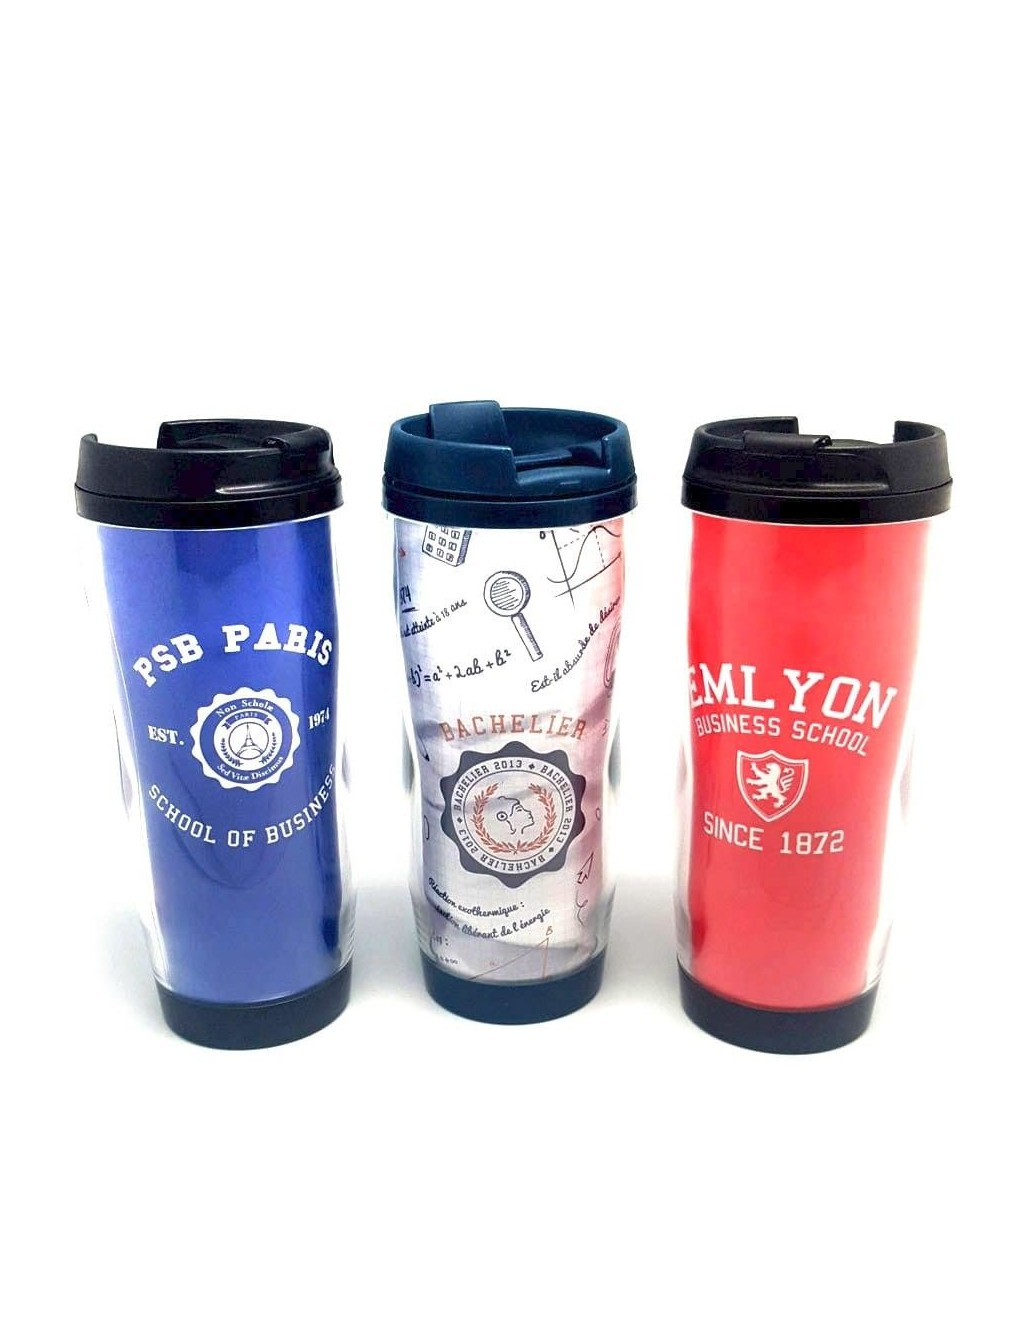 Personalized thermos